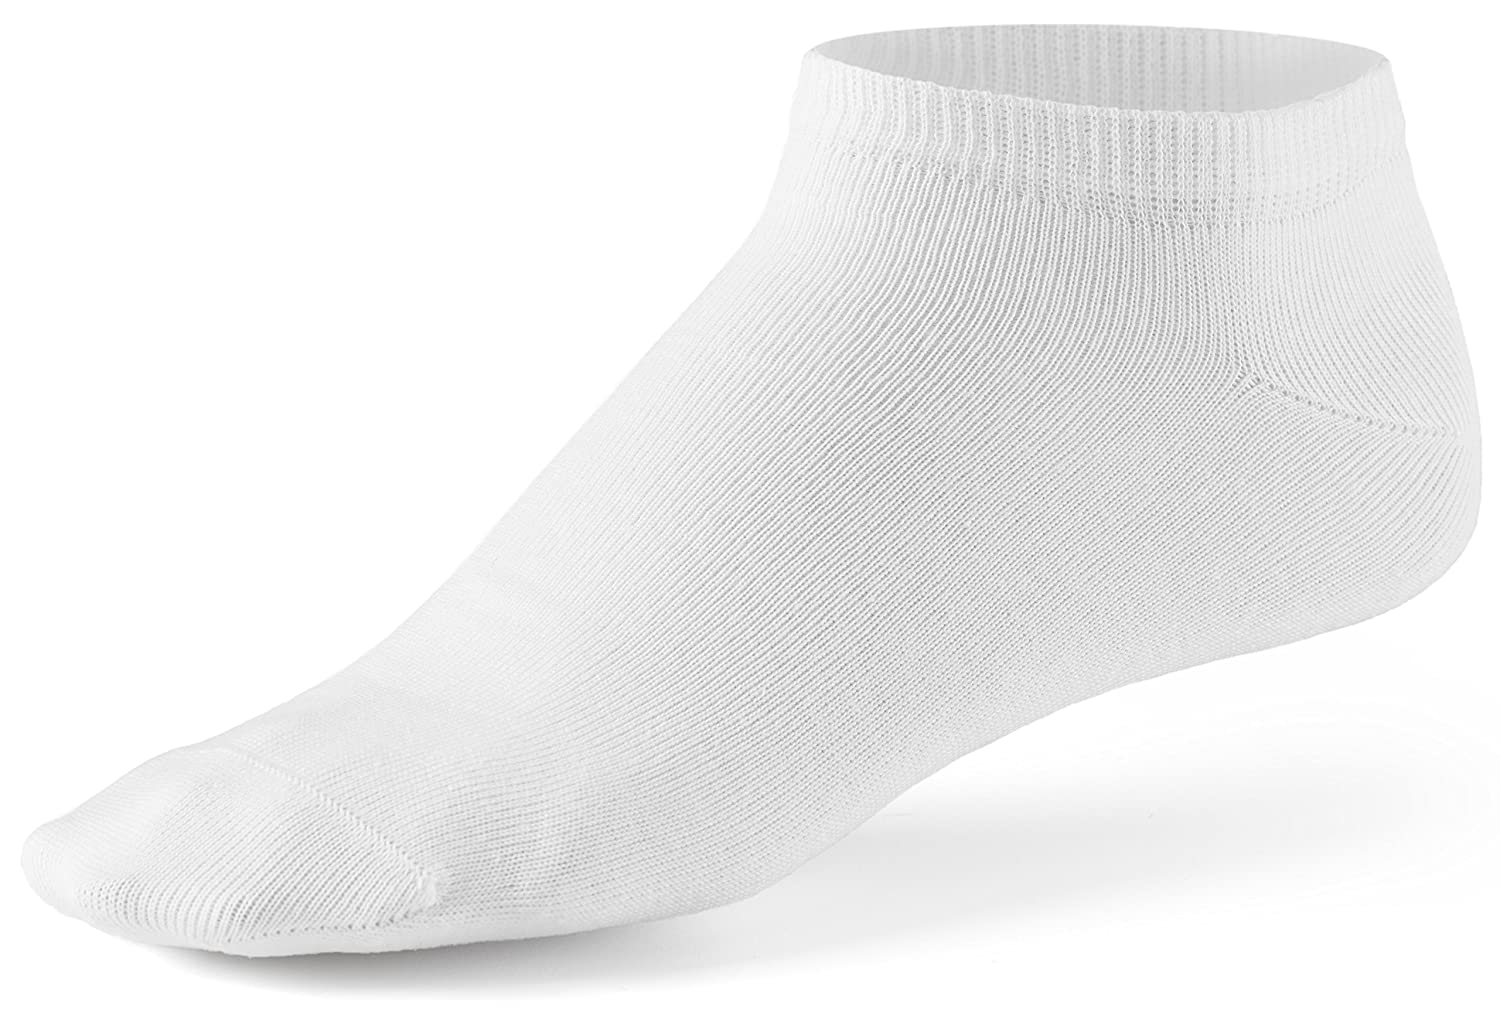 10 Pair Pack Mens Sneaker Socks by Mat /& Vics Cotton Classic Comfortable Breathable